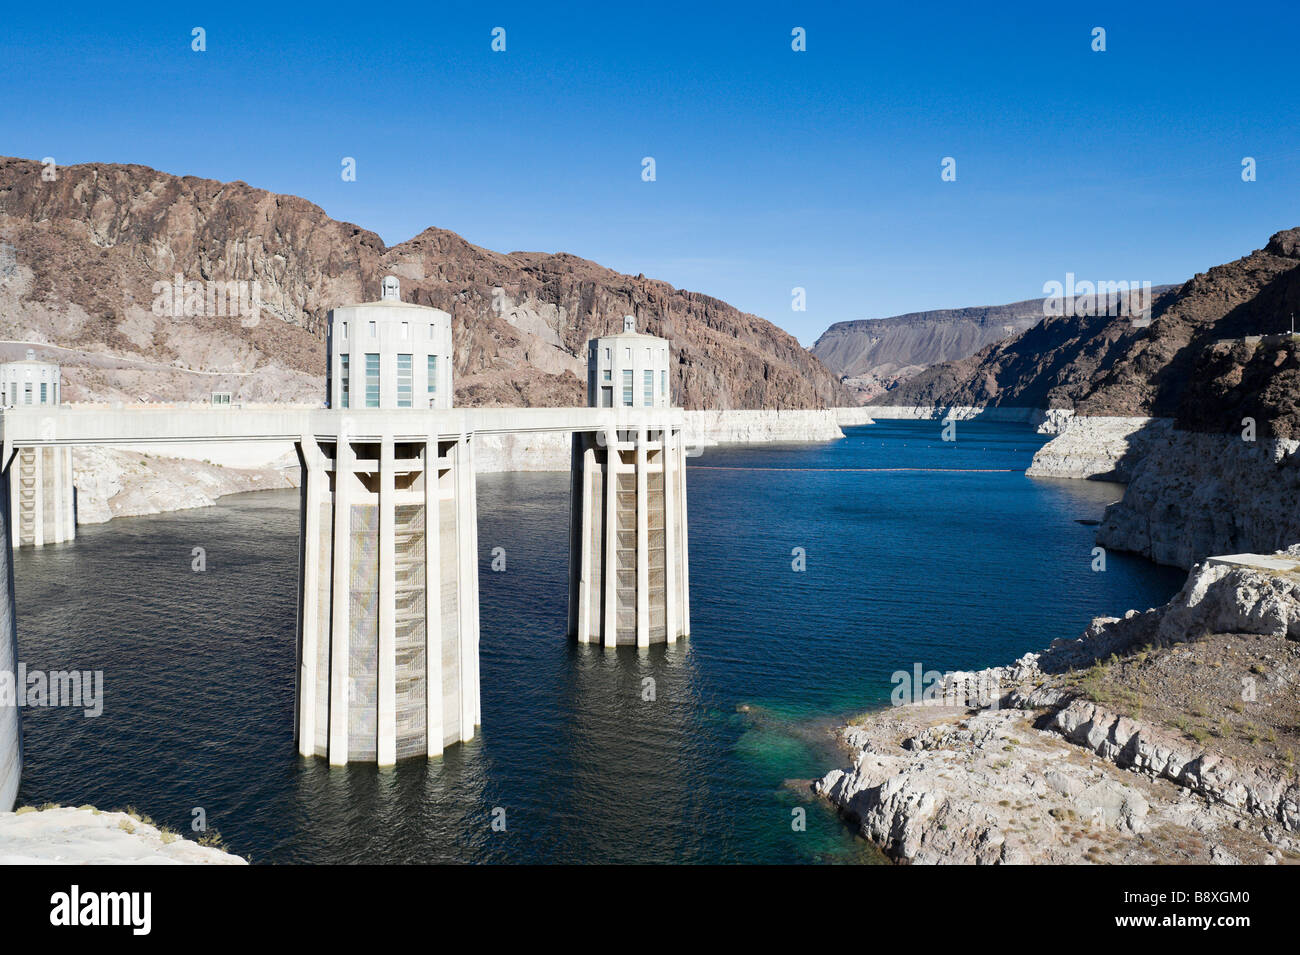 Lake Mead at the Hoover Dam showing the unprecedented low water levels, Arizona/Nevada, USA Stock Photo